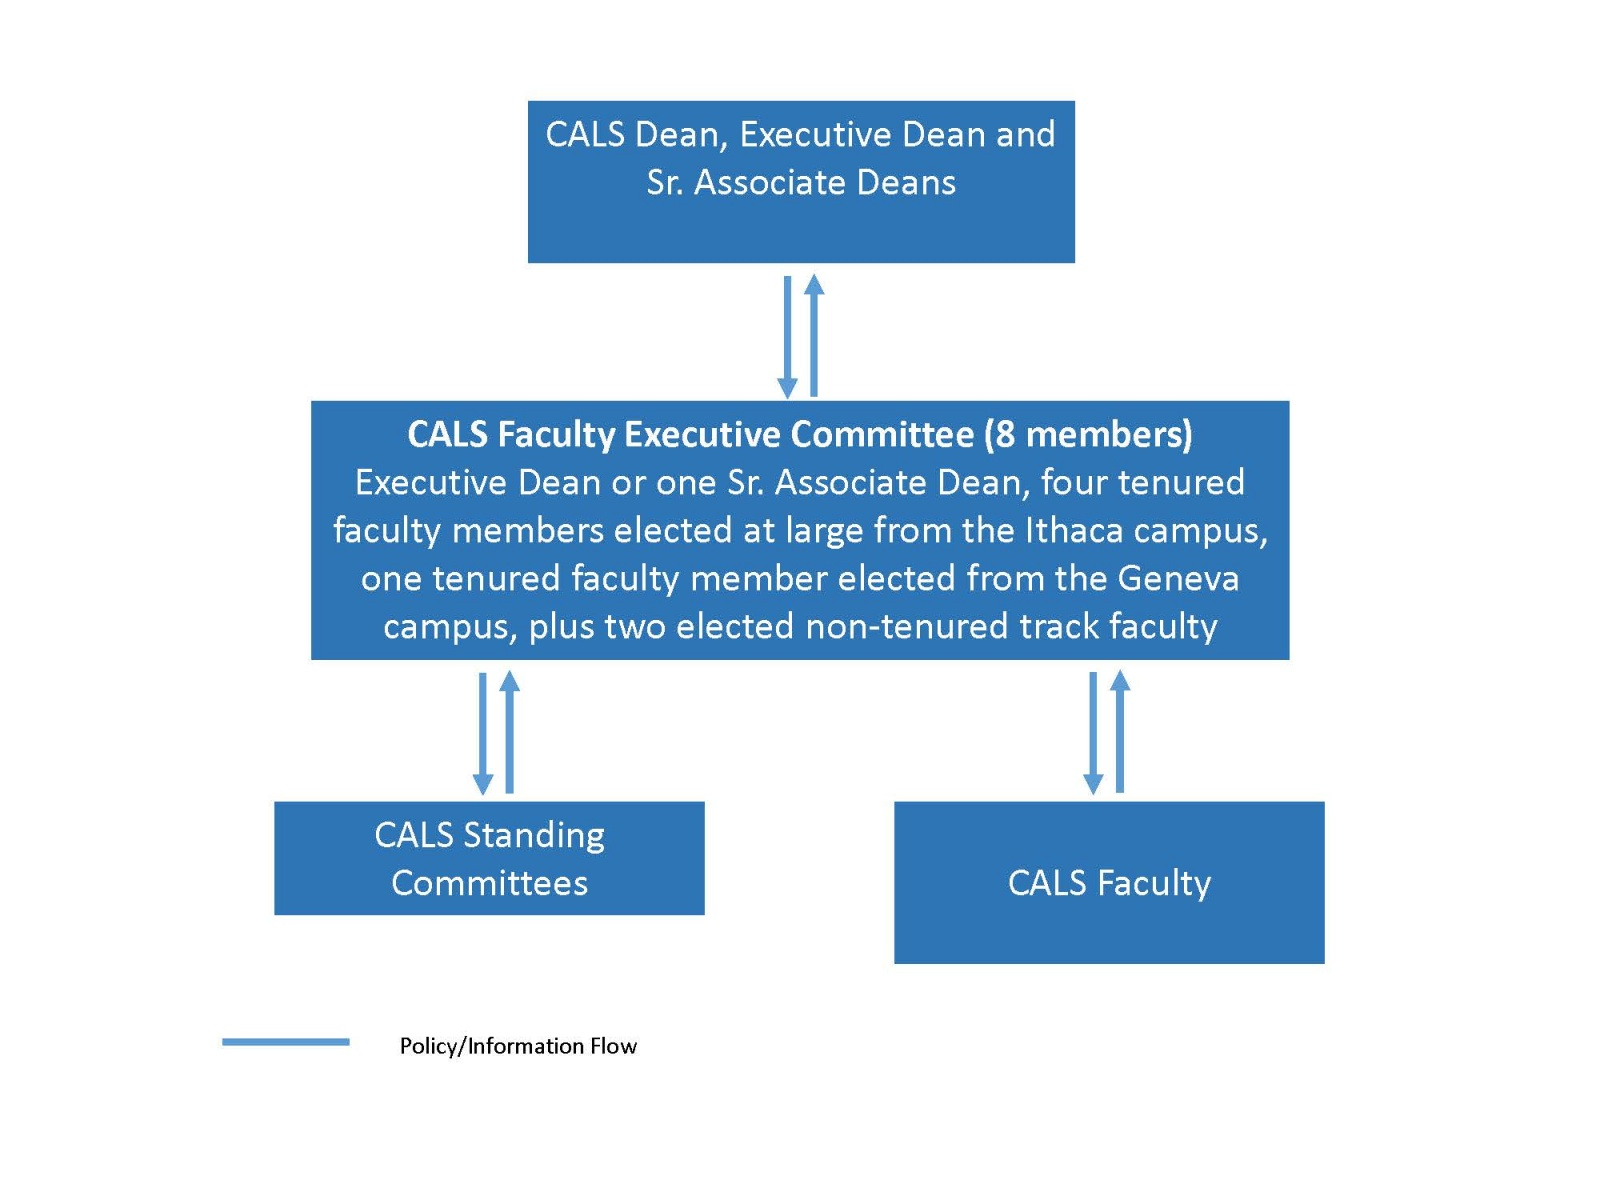 Flow chart showing the organization of CALS Faculty Governance